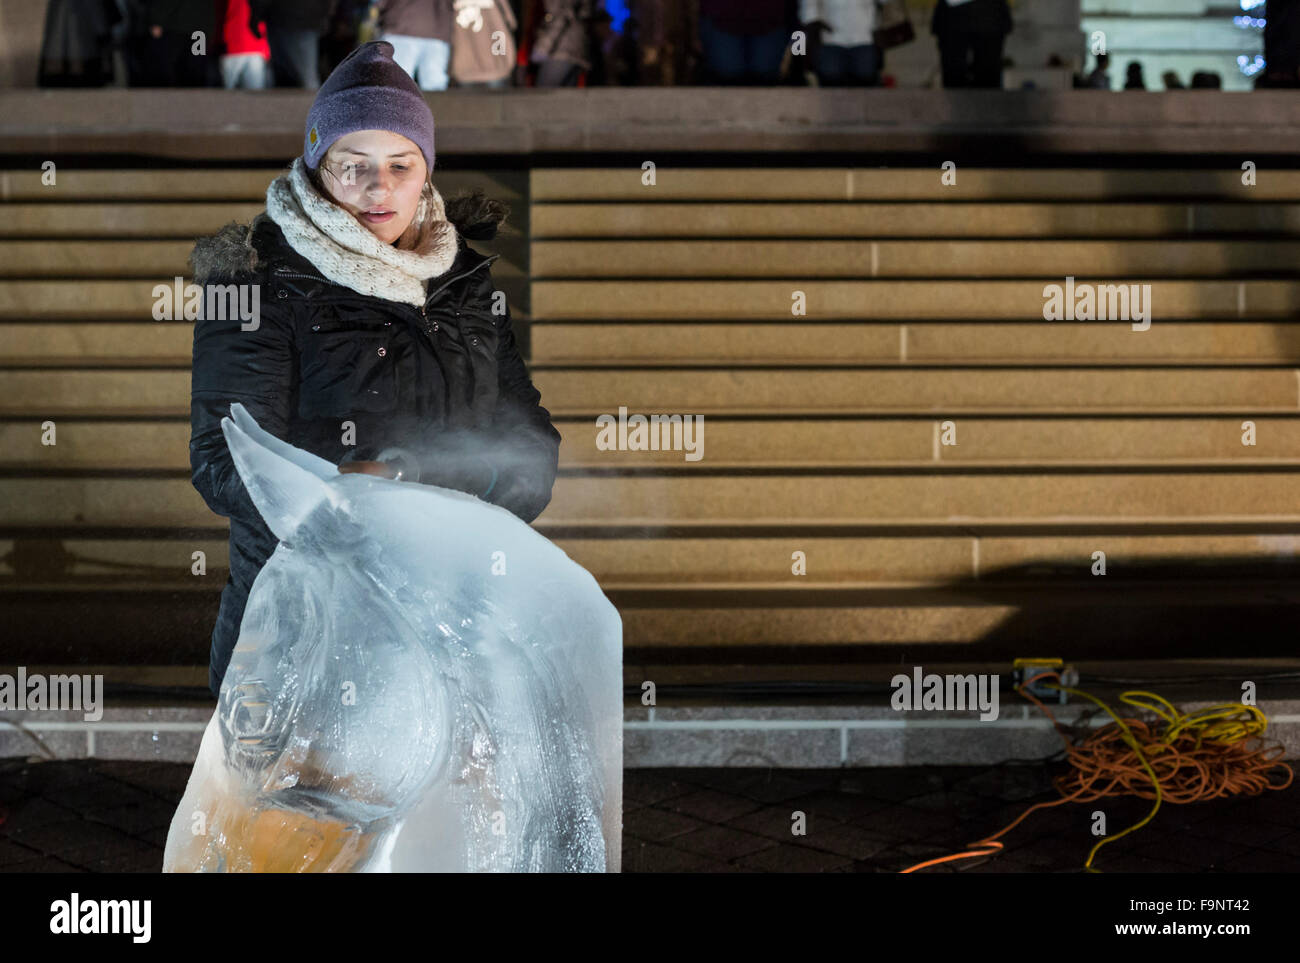 Detroit, Michigan - An artist makes an ice sculpture in front of the Detroit Institute of Arts during Noel Night. - Stock Image